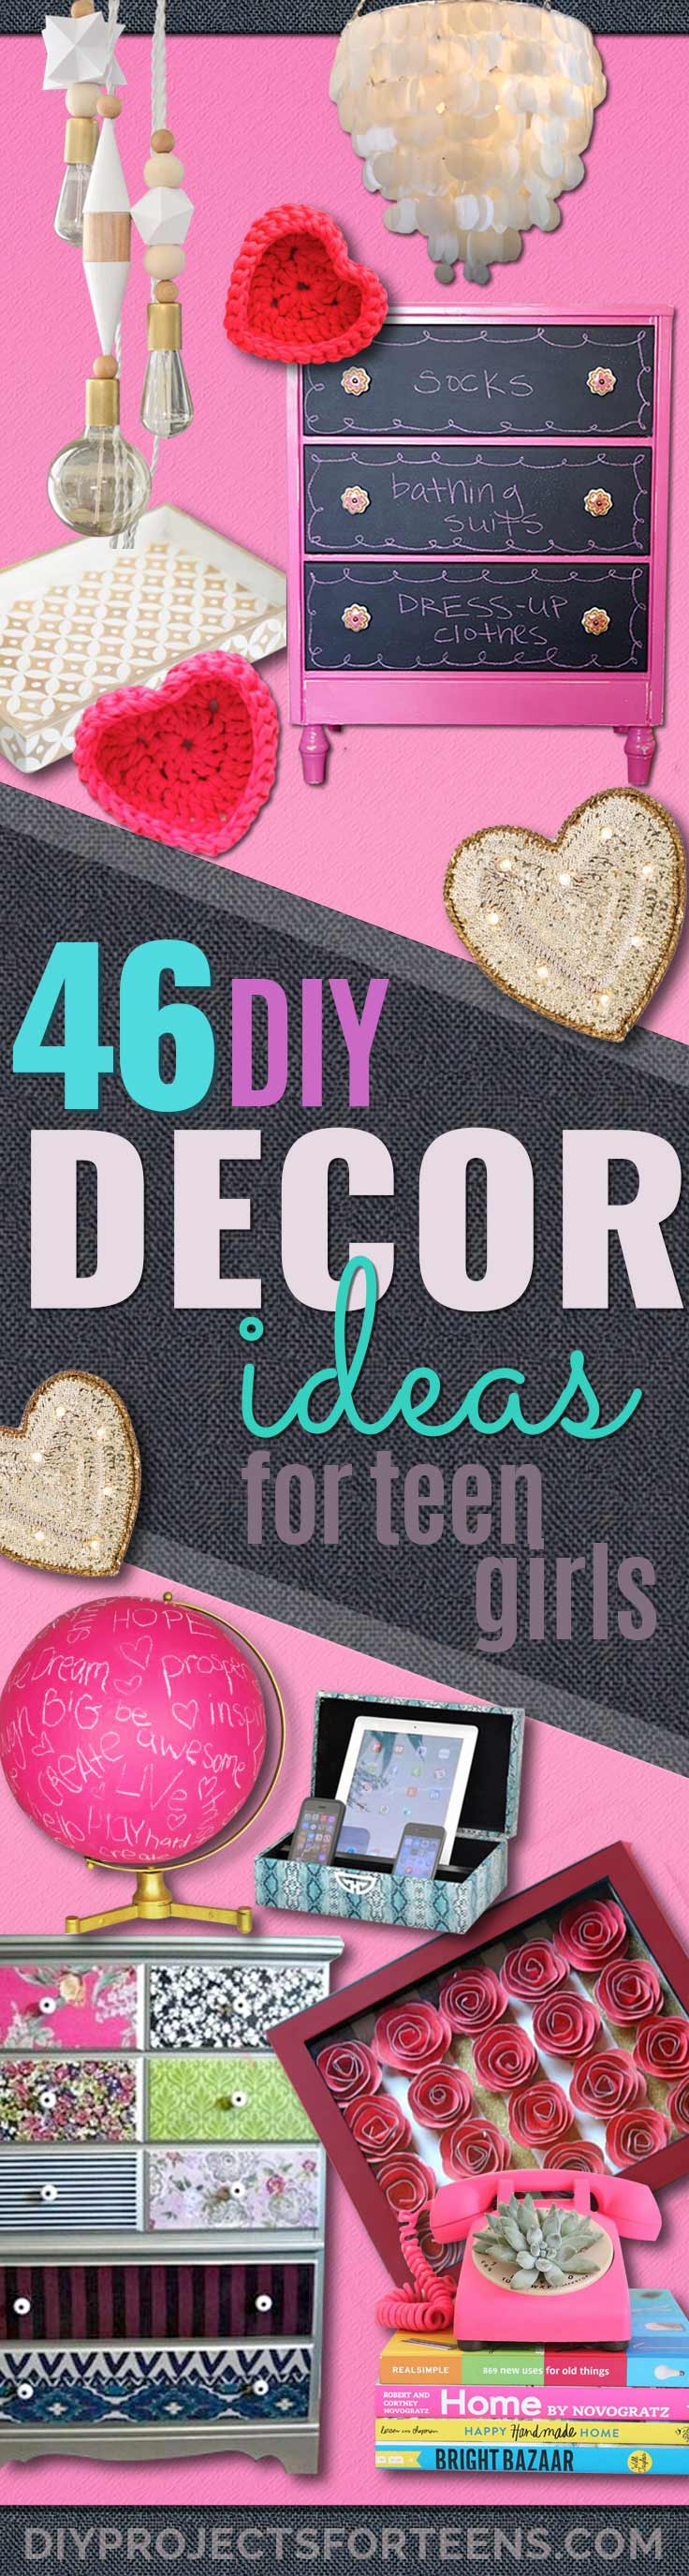 diy teen room decor ideas for girls fun crafts and decor for tweens cool - Teenage Girl Bedroom Wall Designs